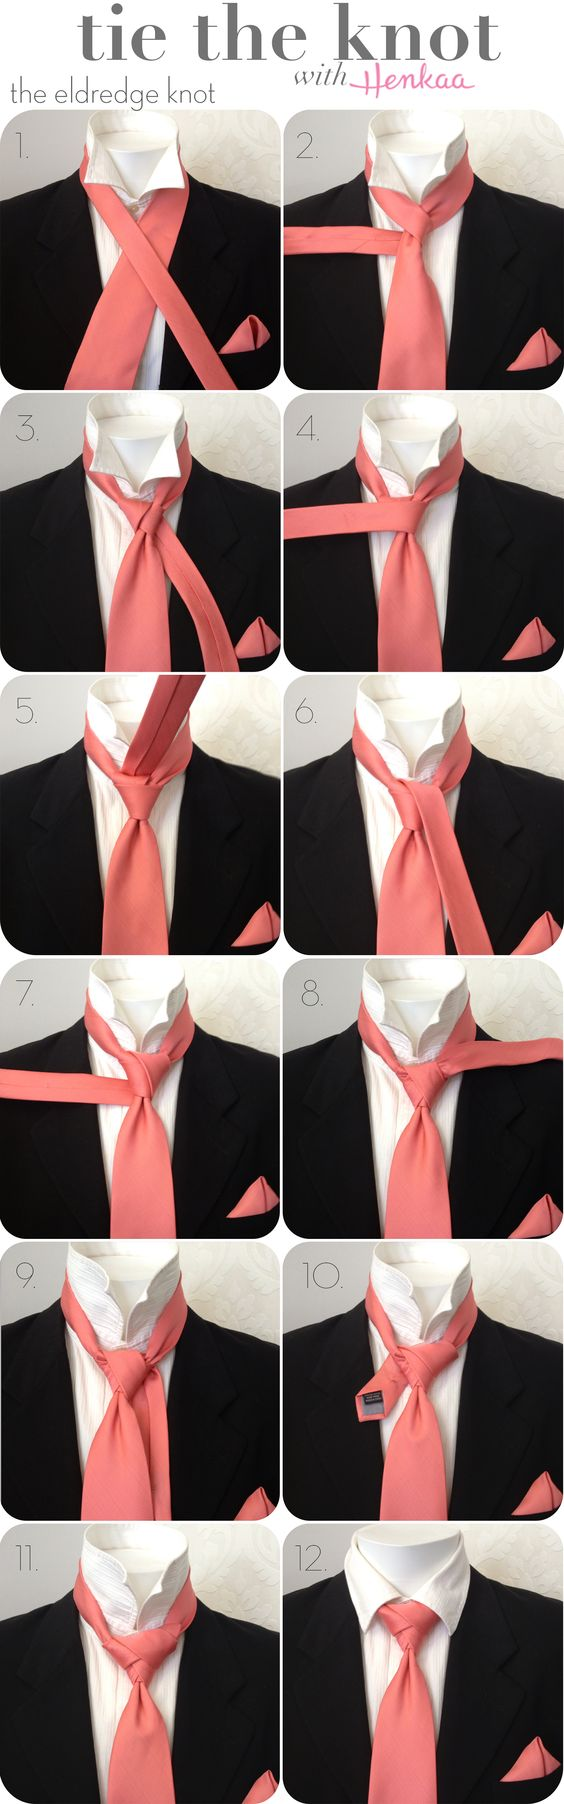 How to tie an eldredge knot. Great for the sartorial groomsmen or just any gentleman with style!